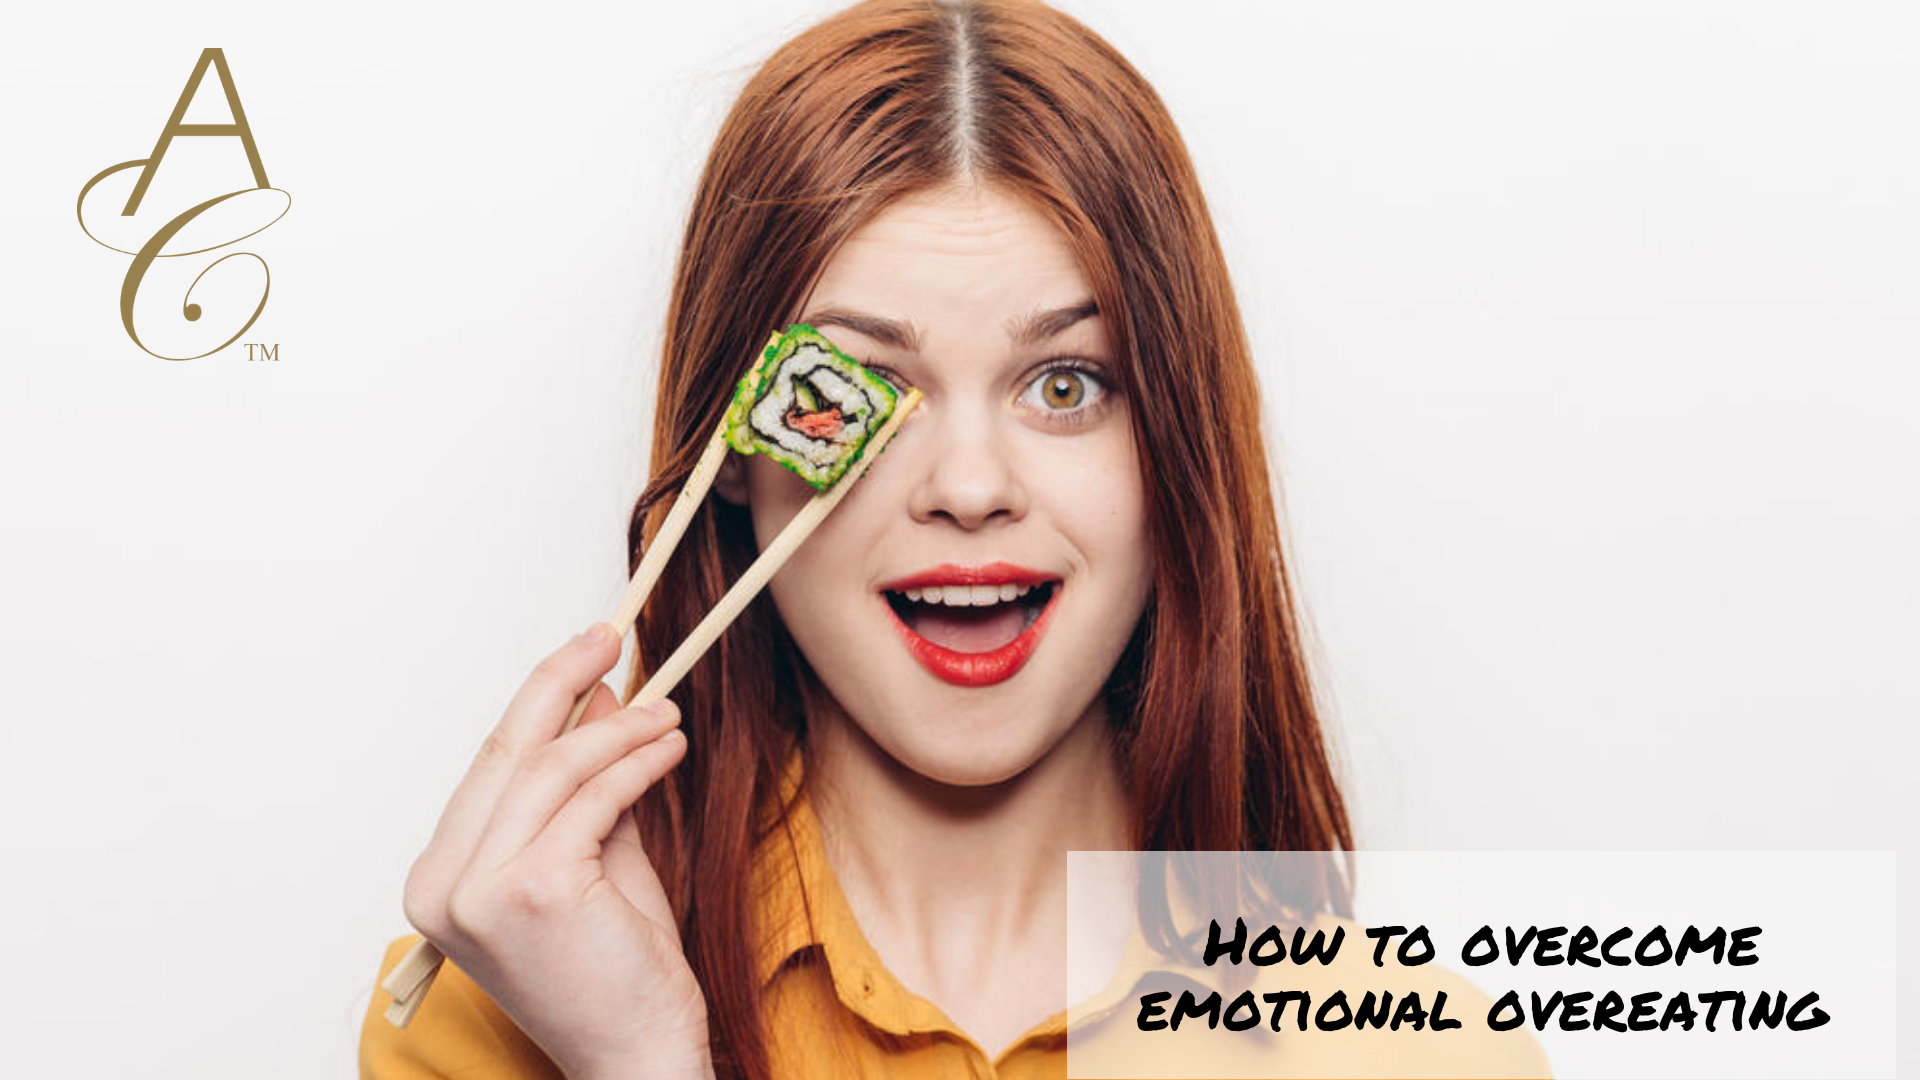 How to overcome emotional overeating